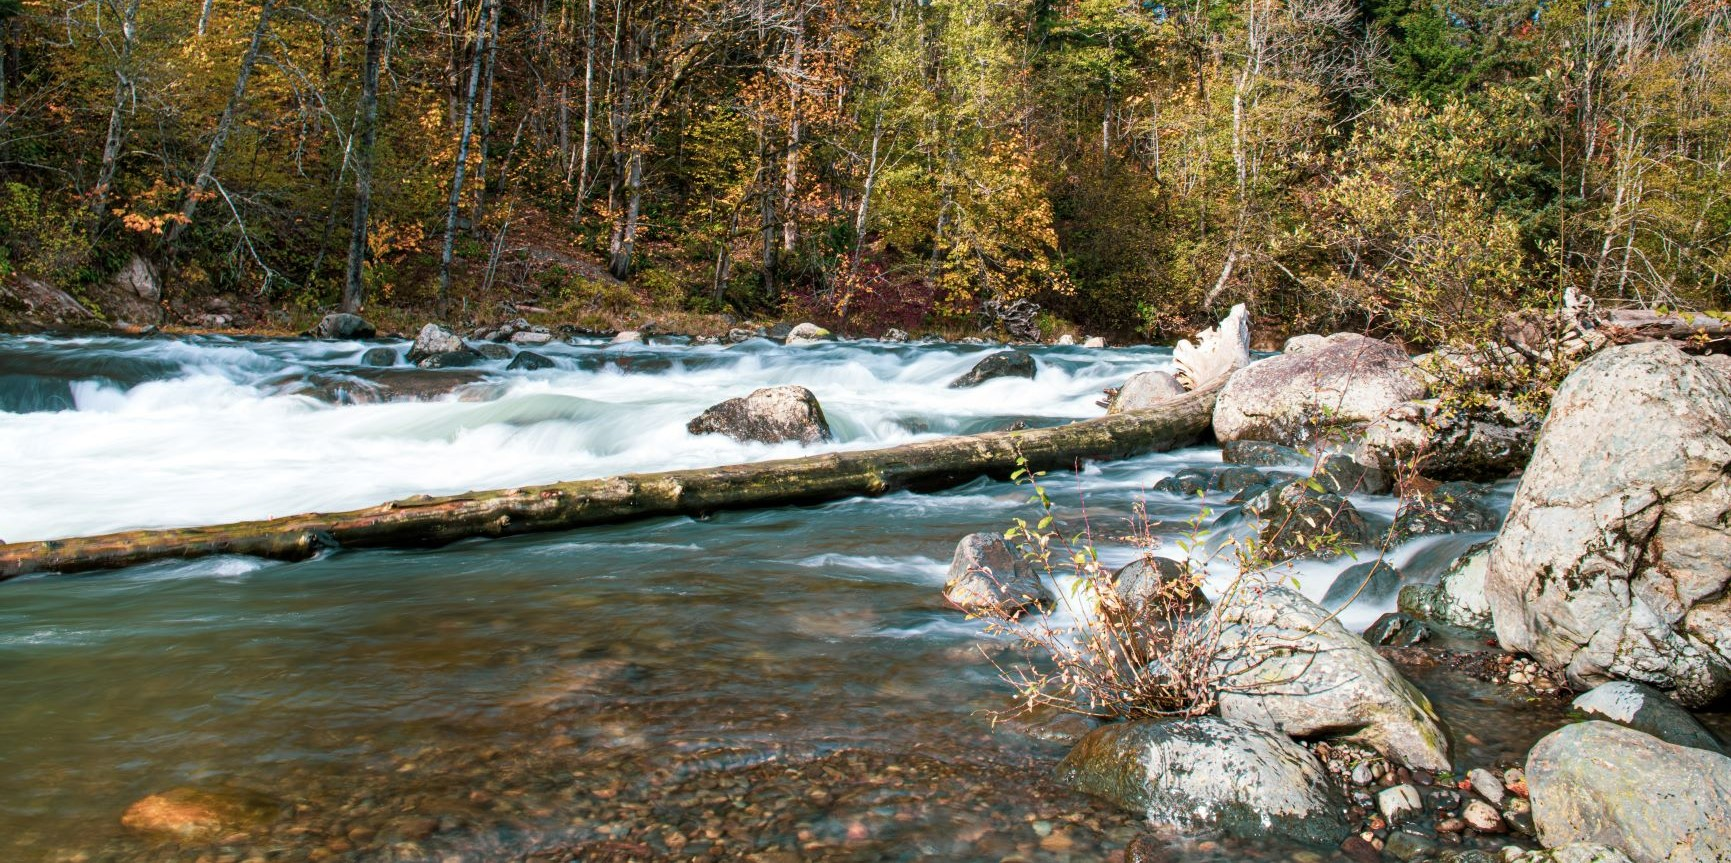 image of rushing river over rocks. Rocks in foreground and a fallen log. Trees in the background.